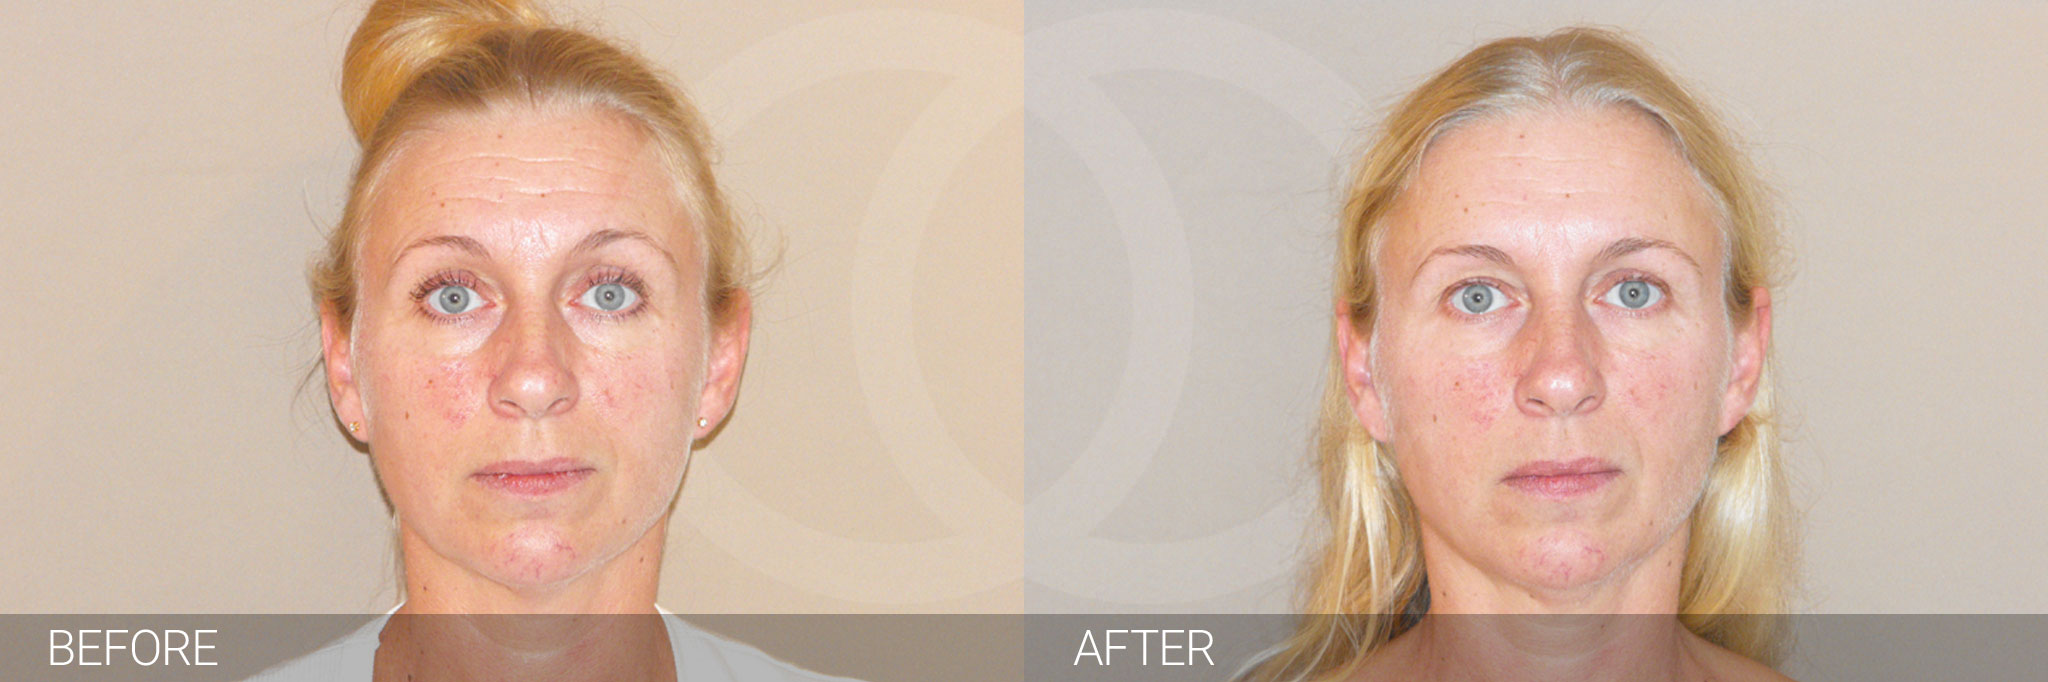 Botox - Botulinum Toxin Non Surgical ante/post-op I